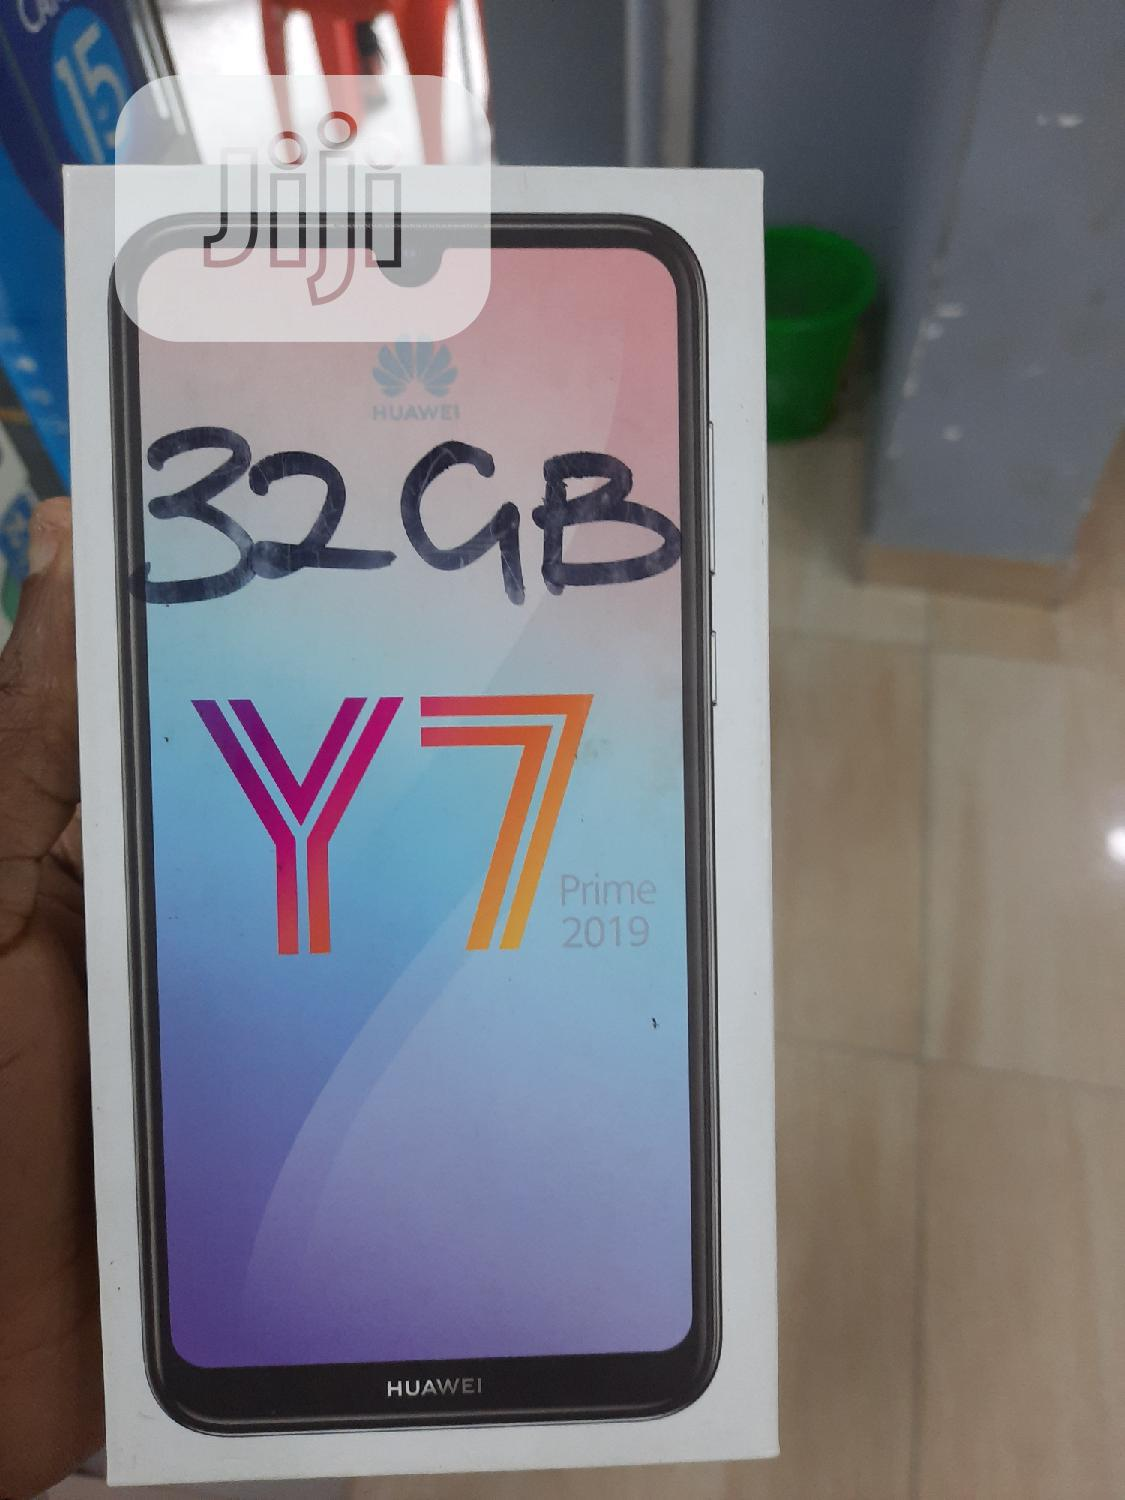 New Huawei Y7 Prime 32 GB | Mobile Phones for sale in Port-Harcourt, Rivers State, Nigeria